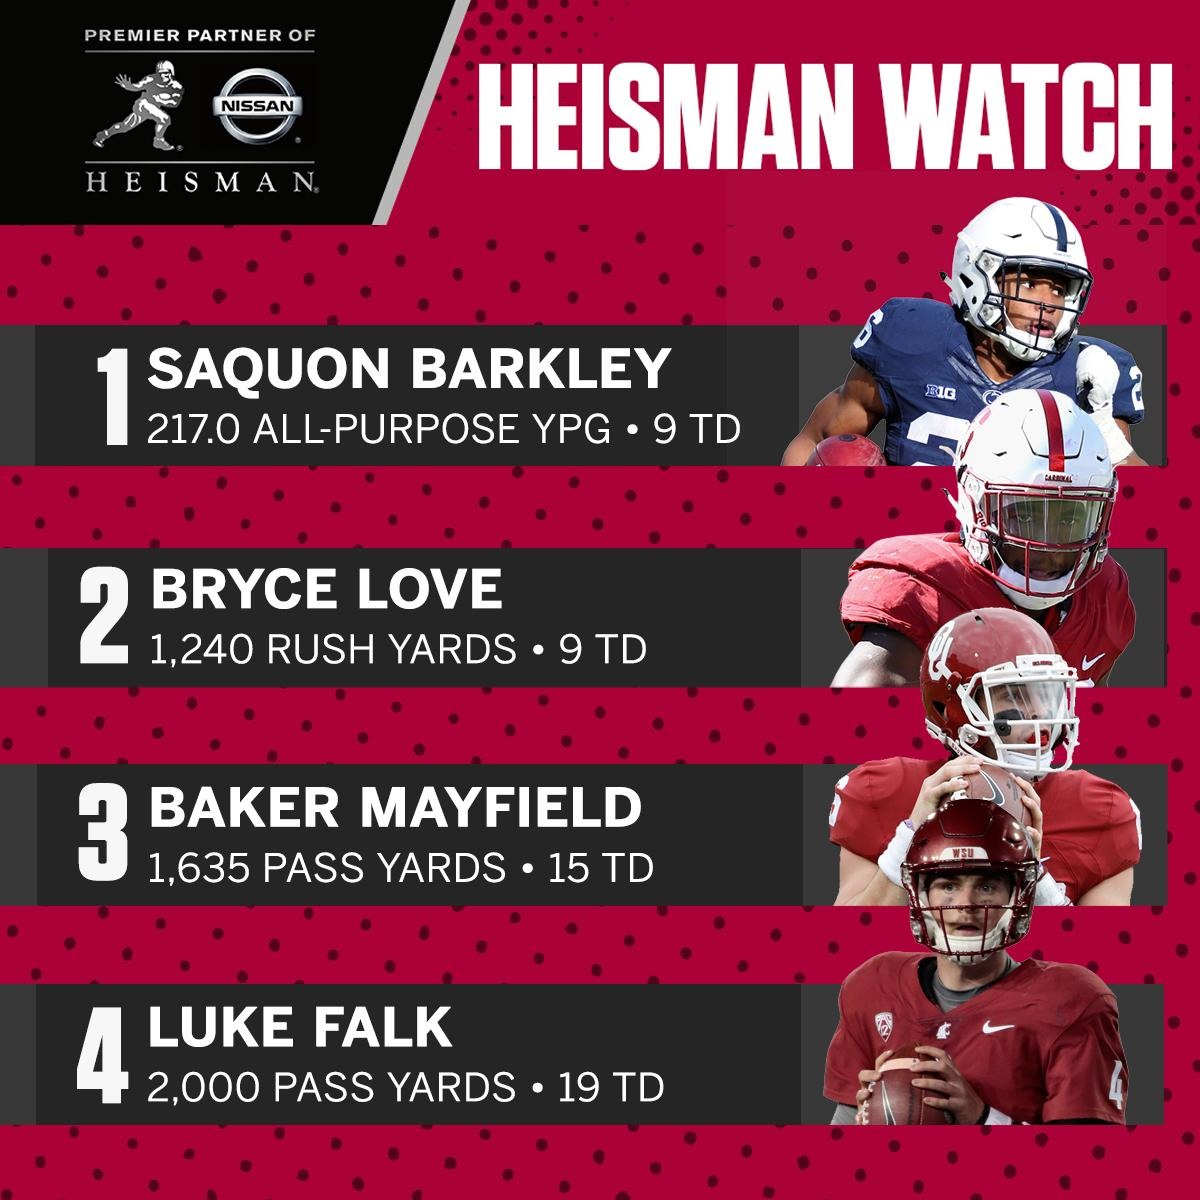 Same players, different order in this week's @NissanUSA #HeismanHouse rankings. https://t.co/LBfzGH6OYM